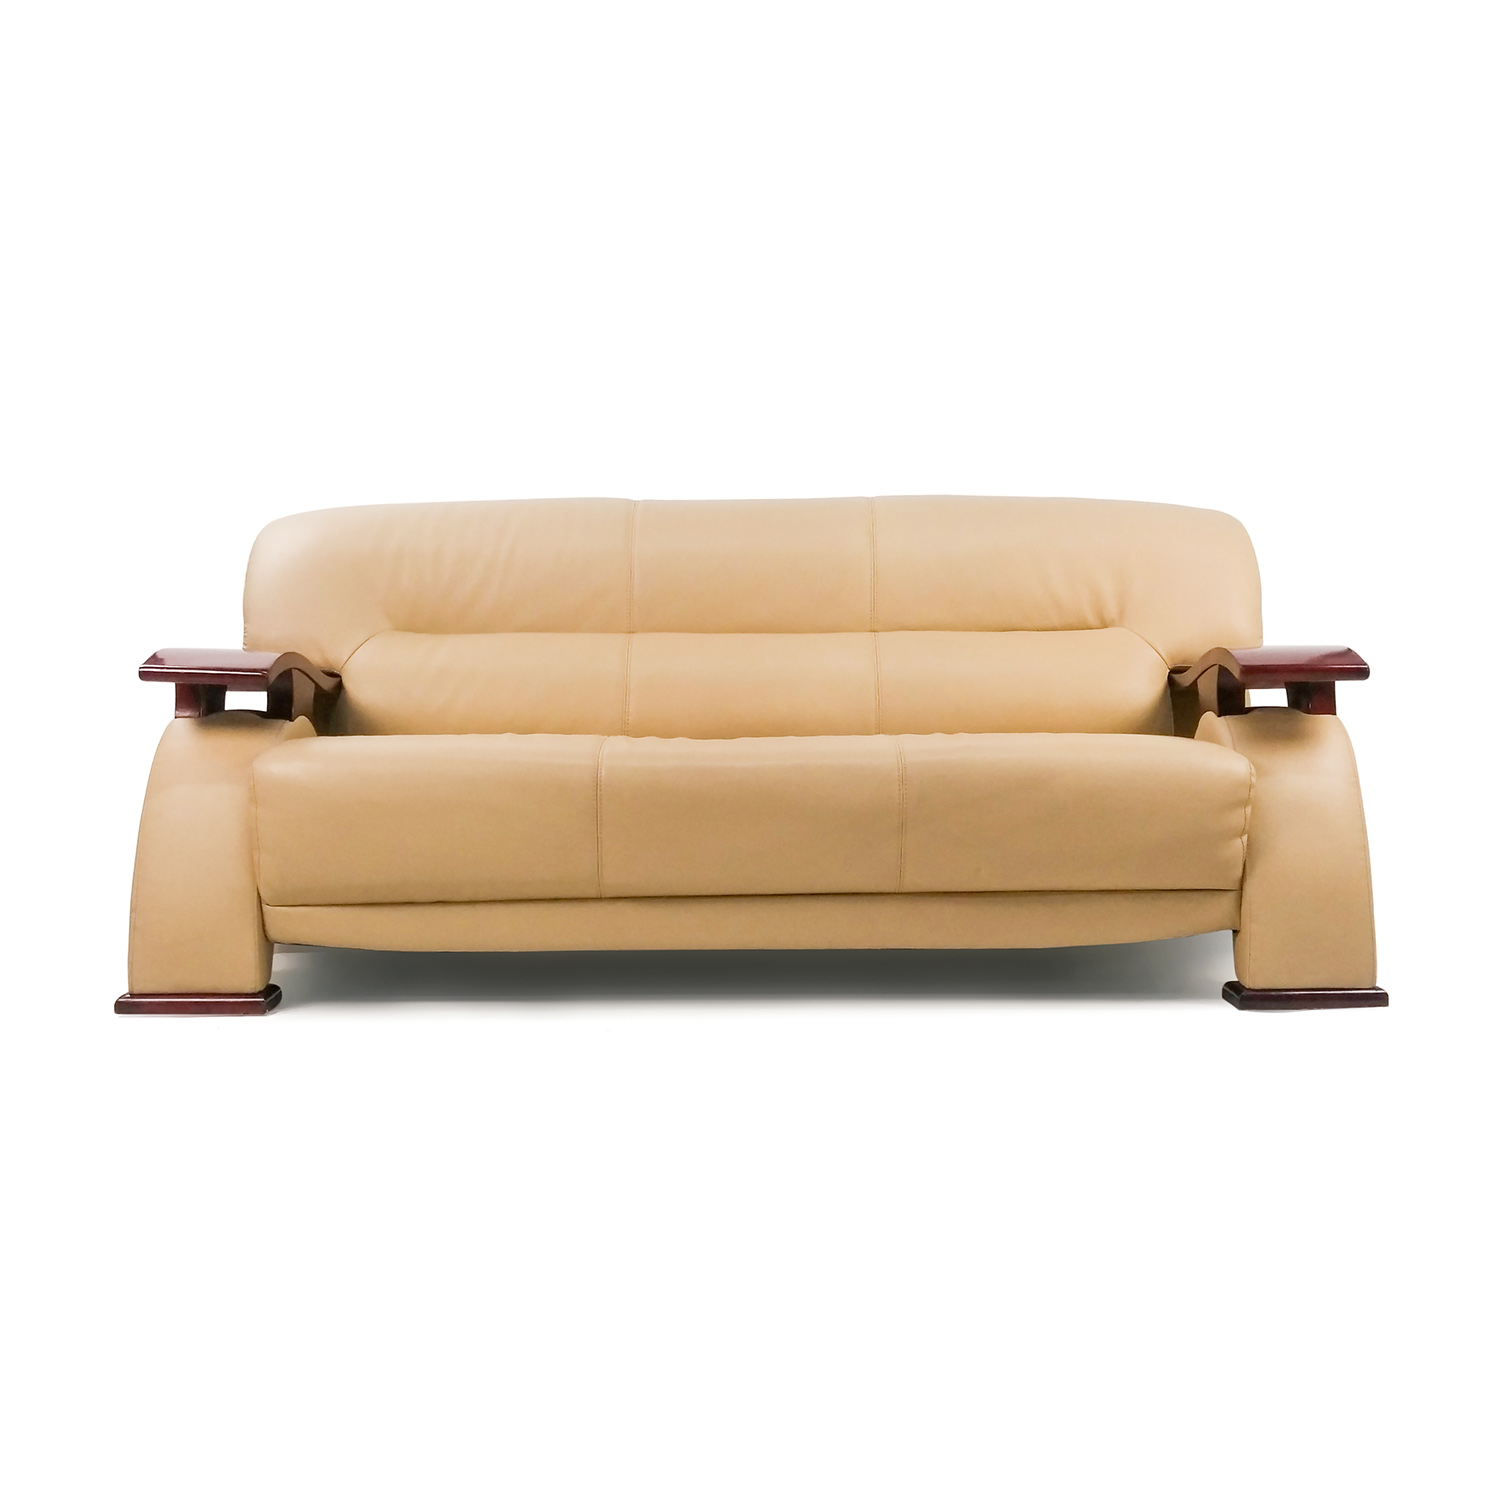 Fresh contemporary leather sofa marmsweb marmsweb for Contemporary leather furniture